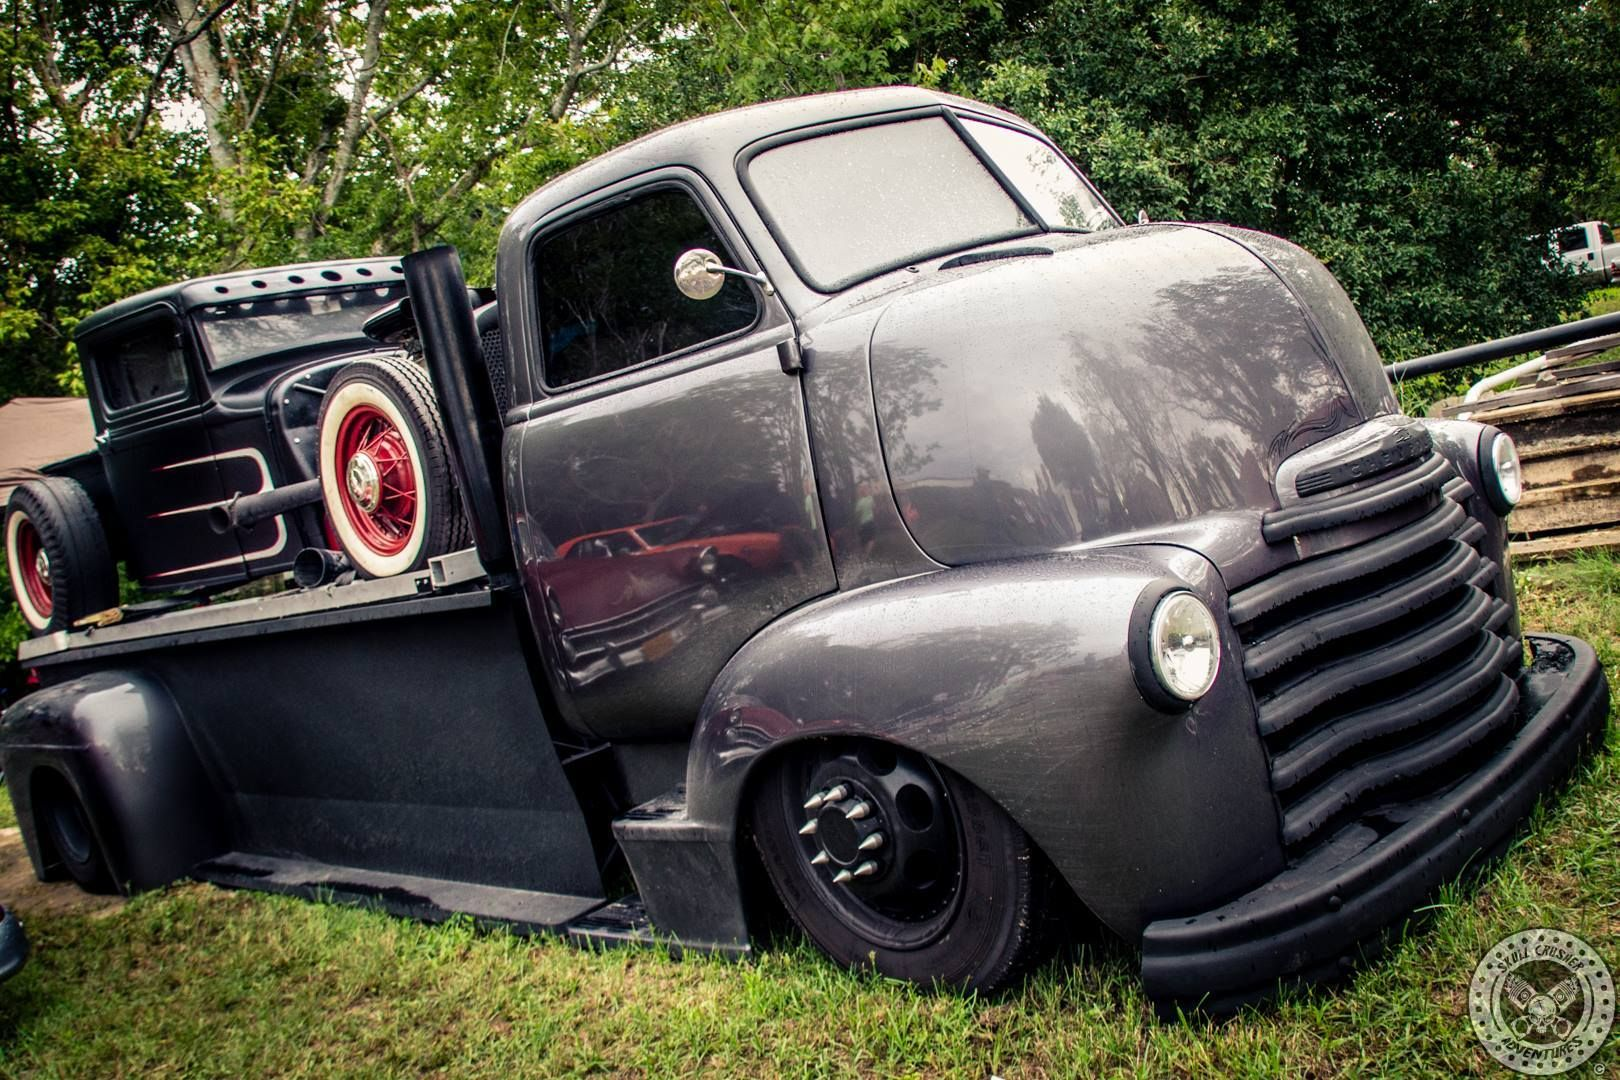 medium resolution of chevy chevrolet advanced desing coe pickup flatbed rolloff with a traditional pickup truck hotrod on the back white walls slammed gun metal gray flat